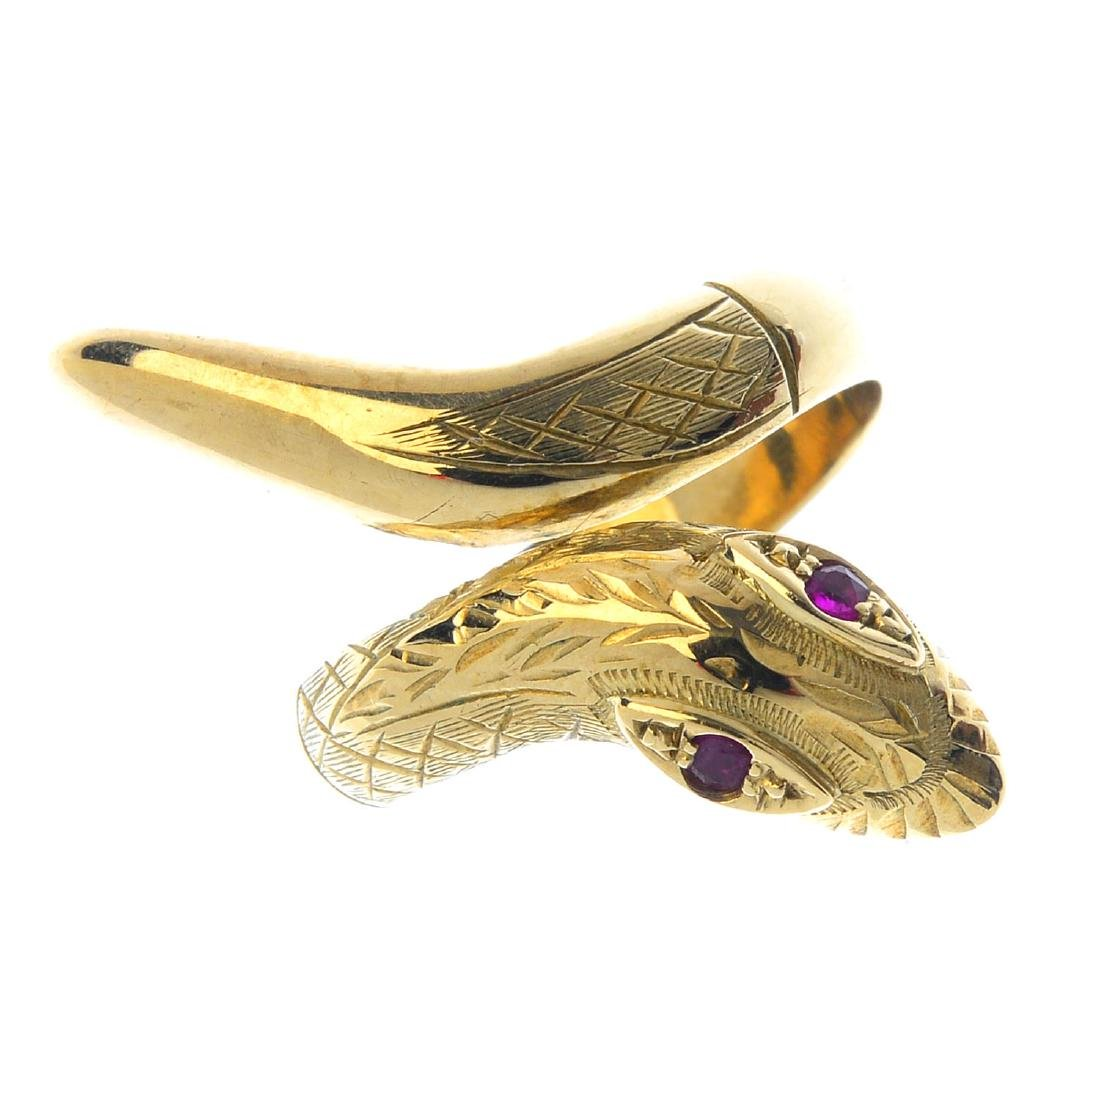 A 9ct gold ruby snake ring. Designed as a textured